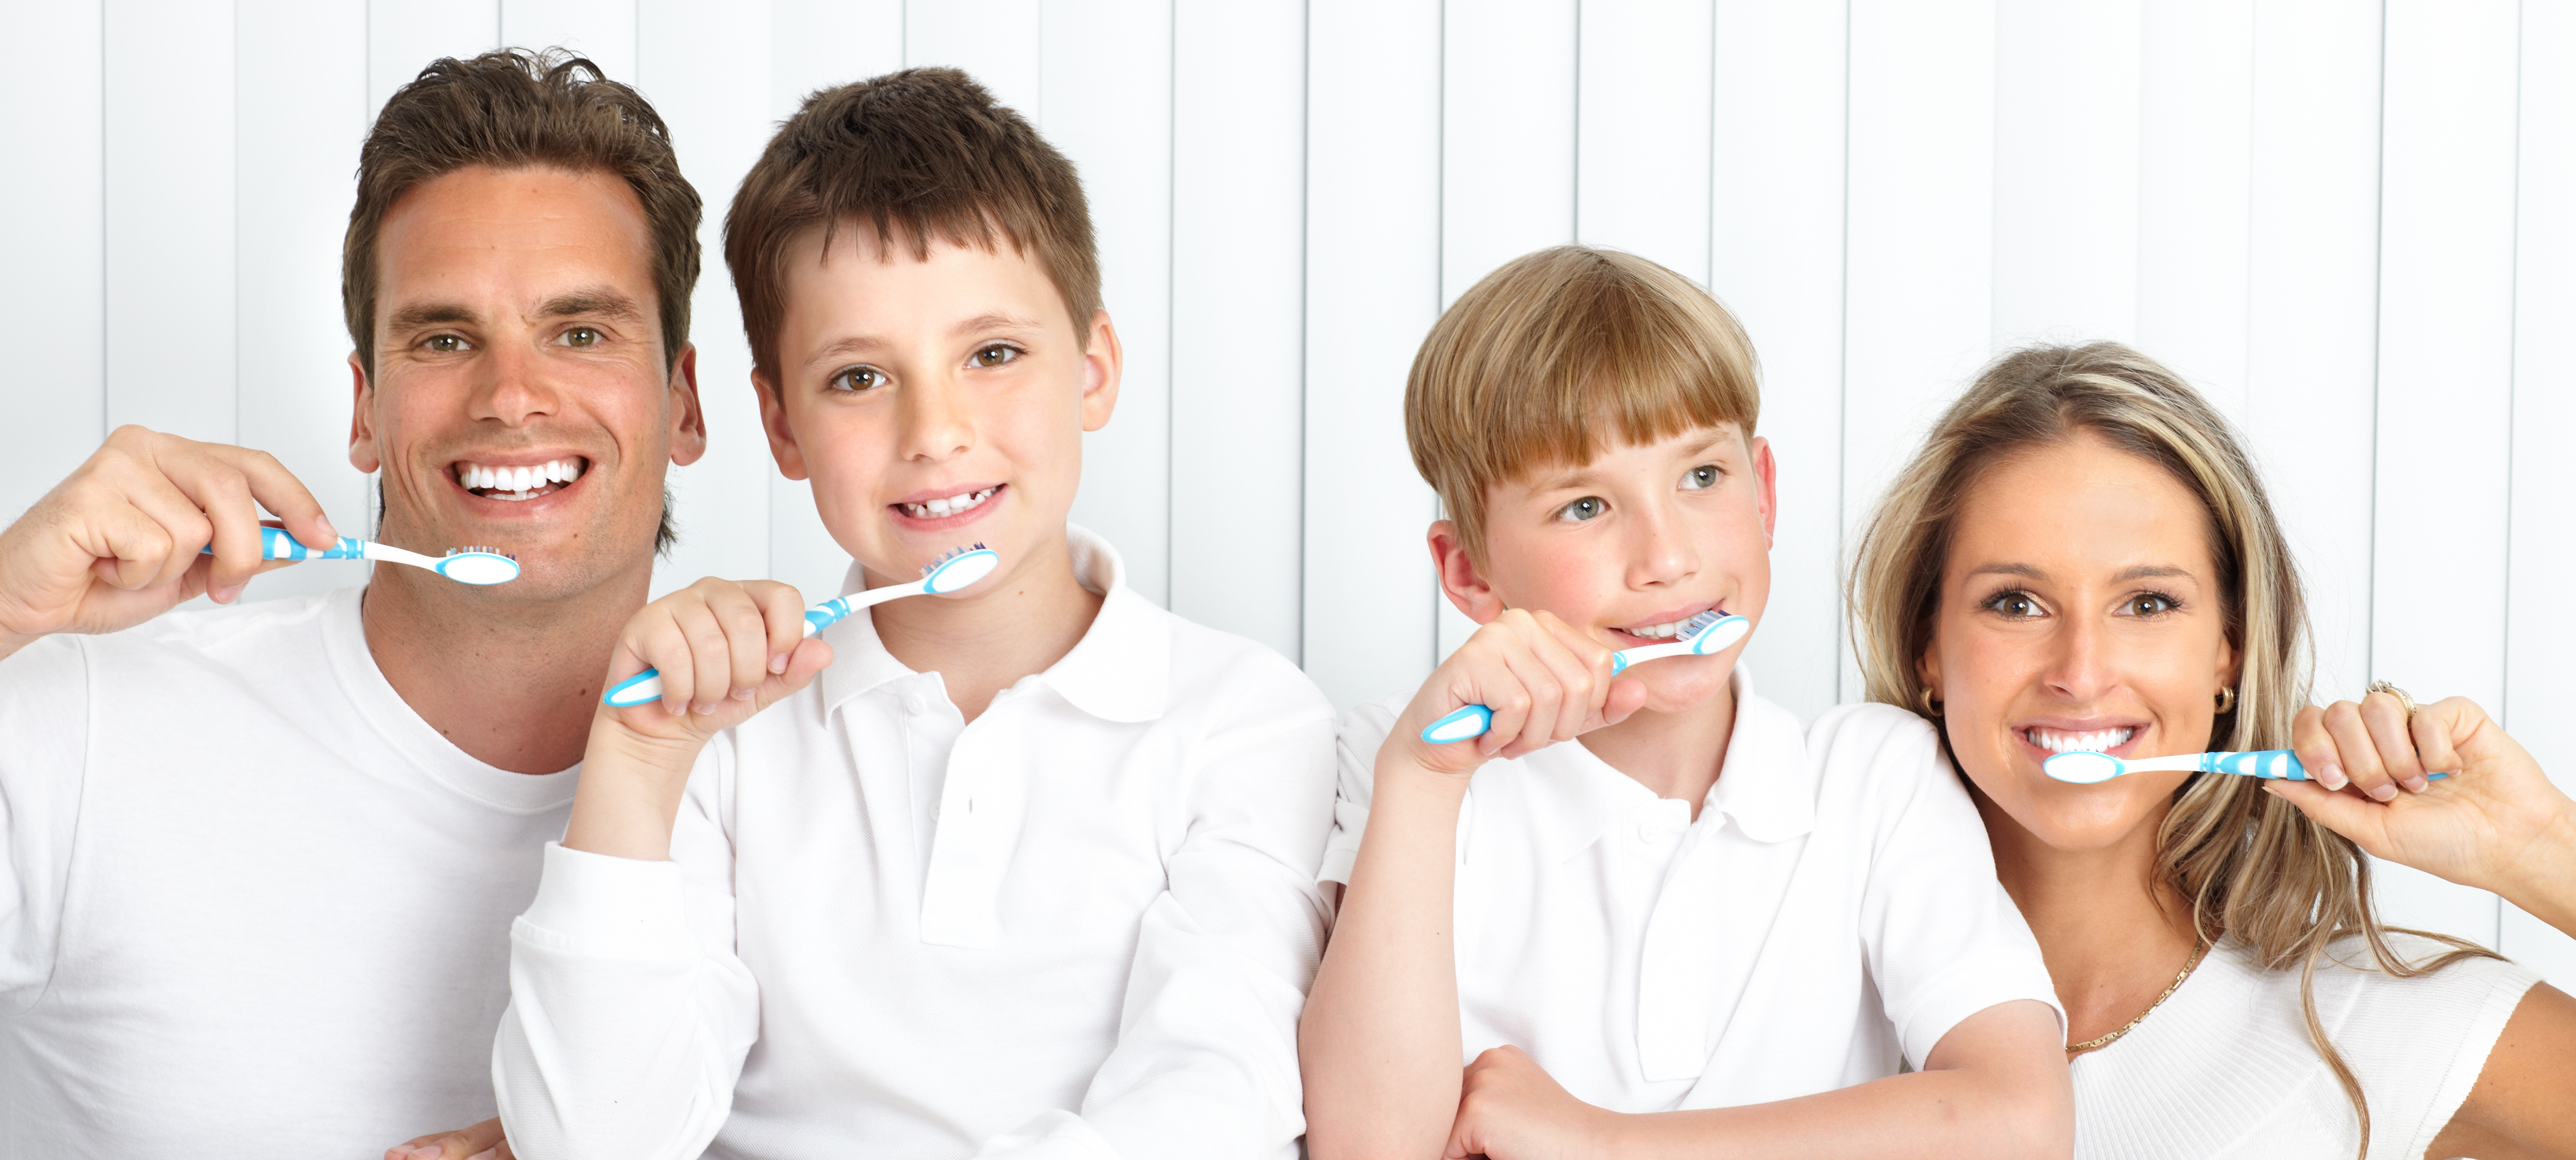 Family Dentist Tallahassee Child Teen Adult Dental Care